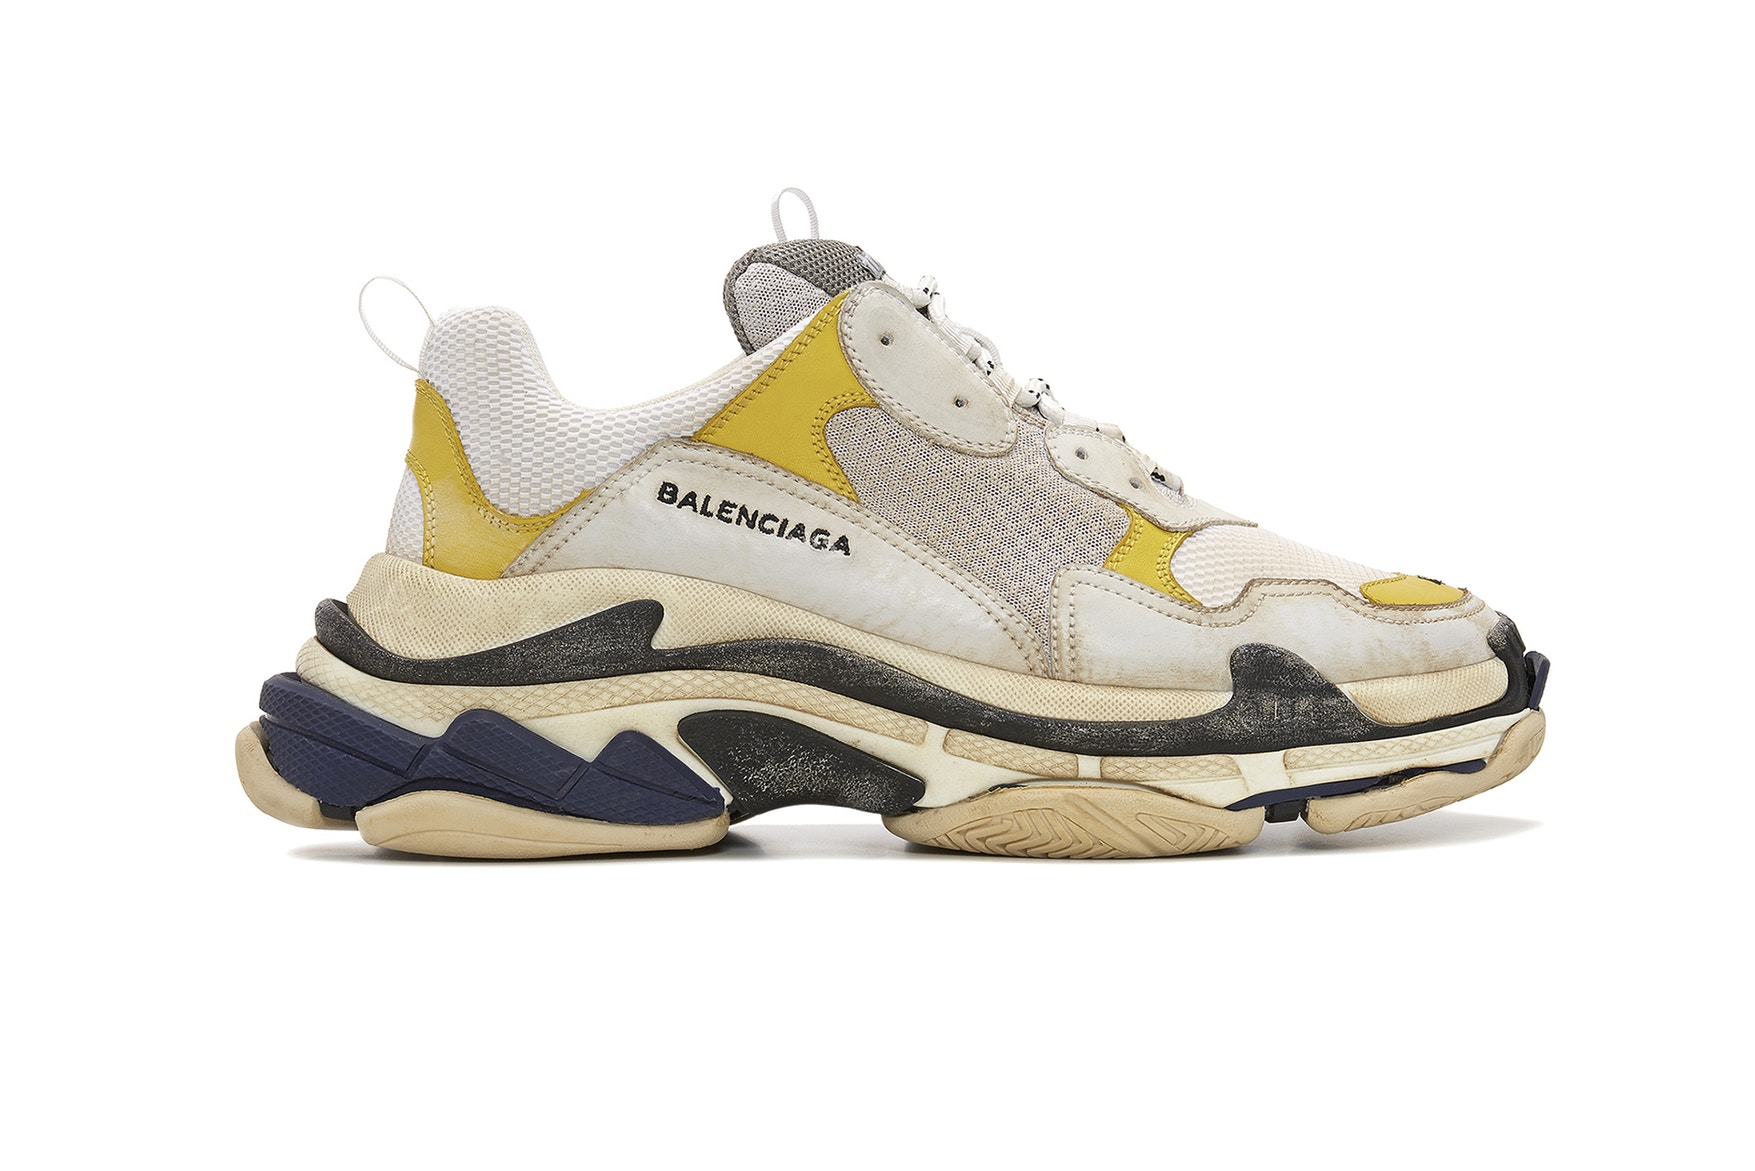 e37861d70678 Balenciaga s Triple-S has got a good claim to be the most talked about  sneaker of 2017